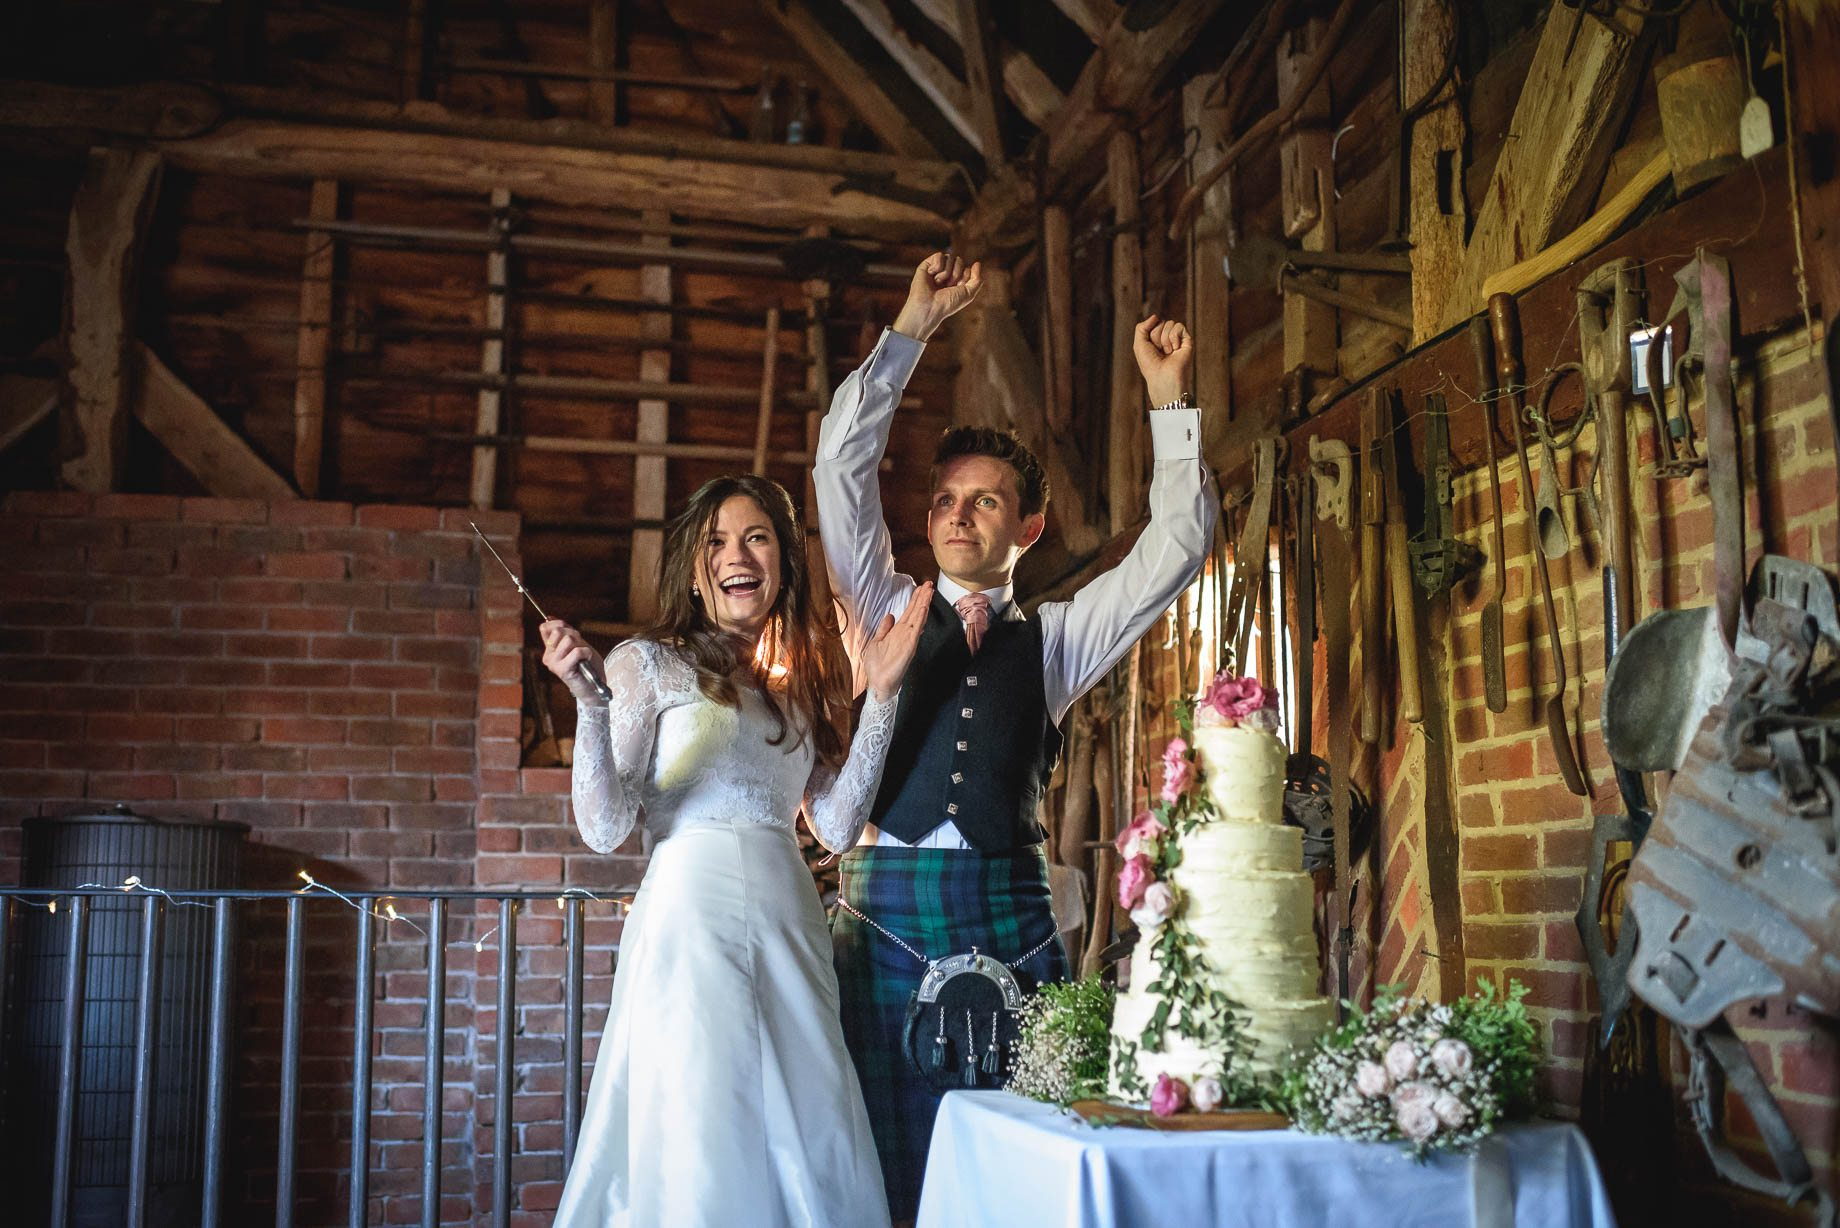 Gildings Barn wedding photography - Sarah and Steve (174 of 190)